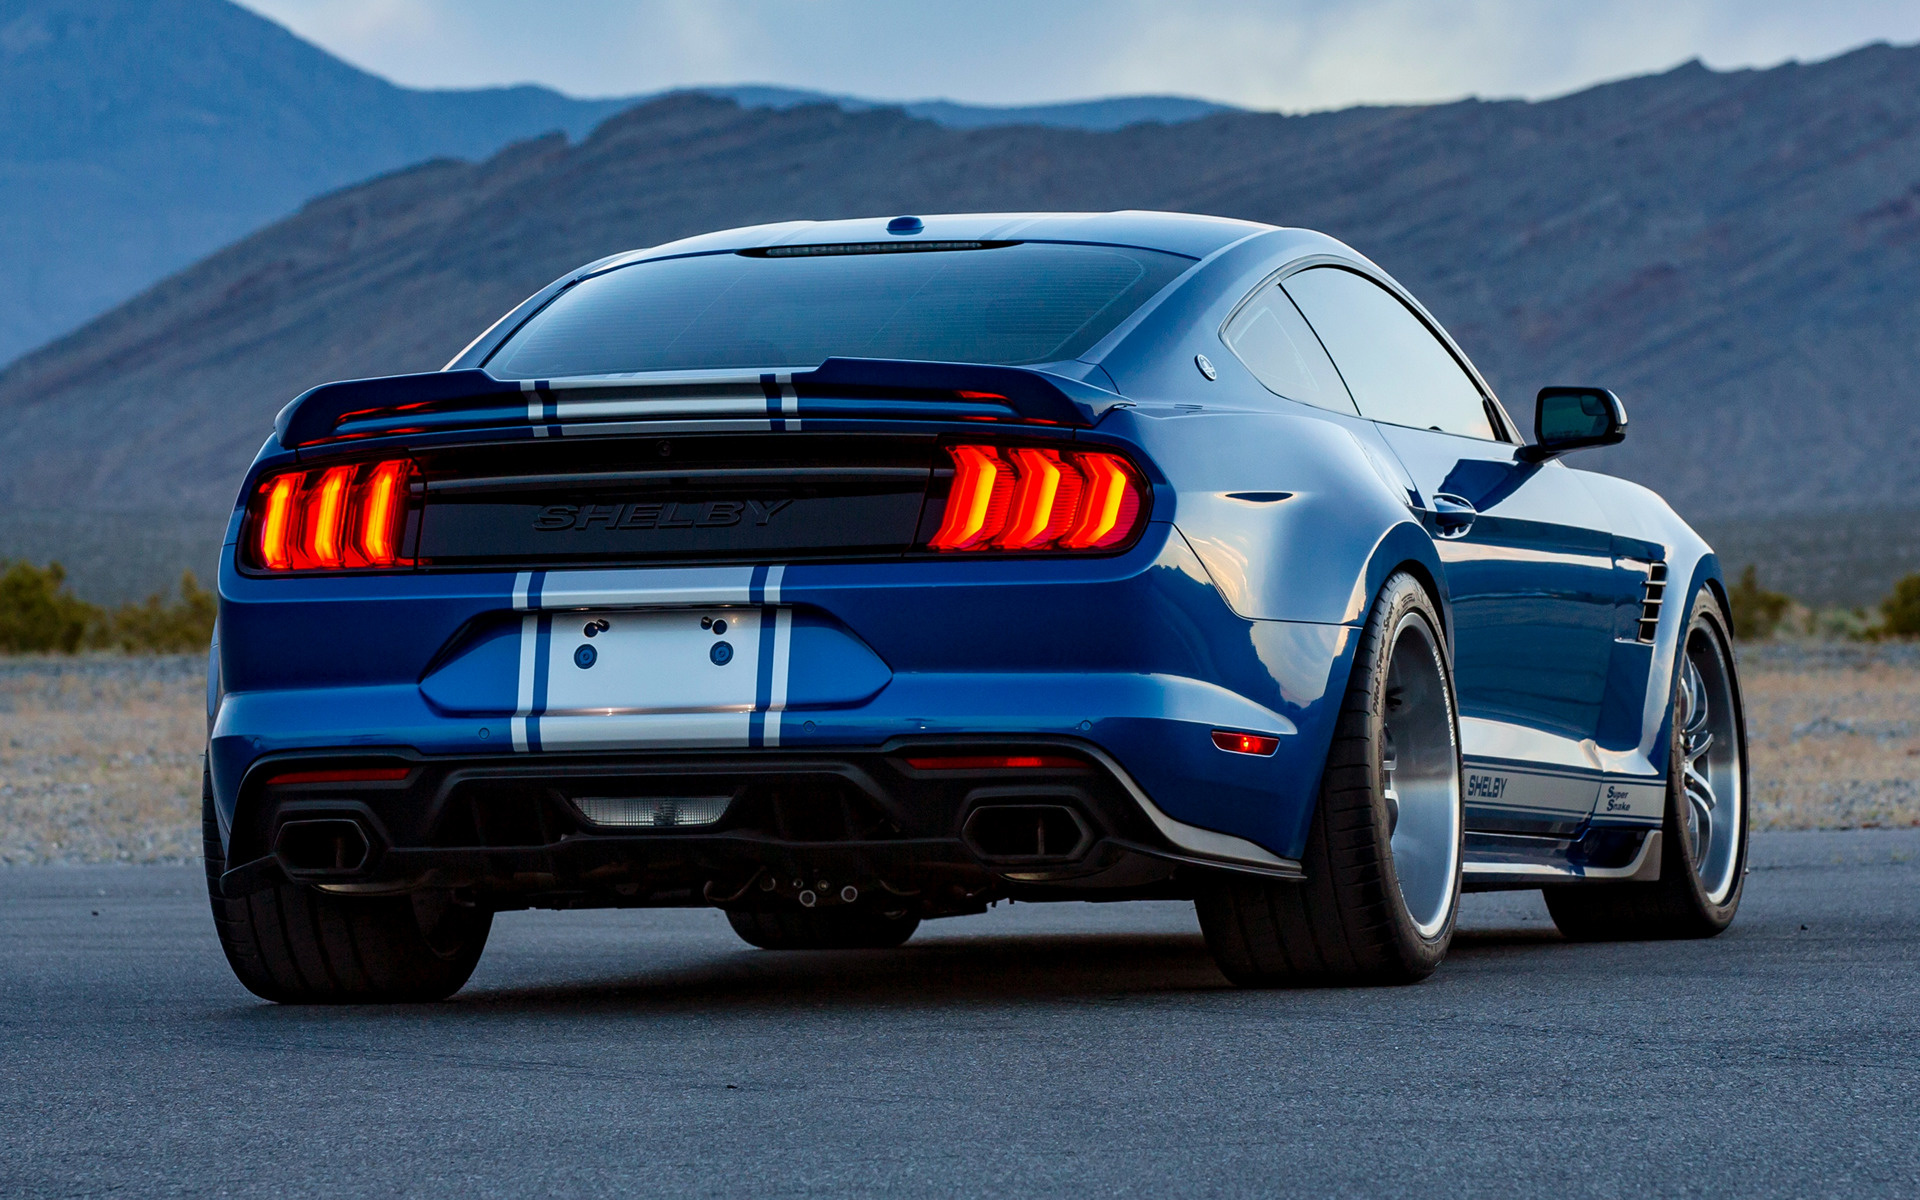 2018 Shelby Super Snake Widebody - Wallpapers and HD ...